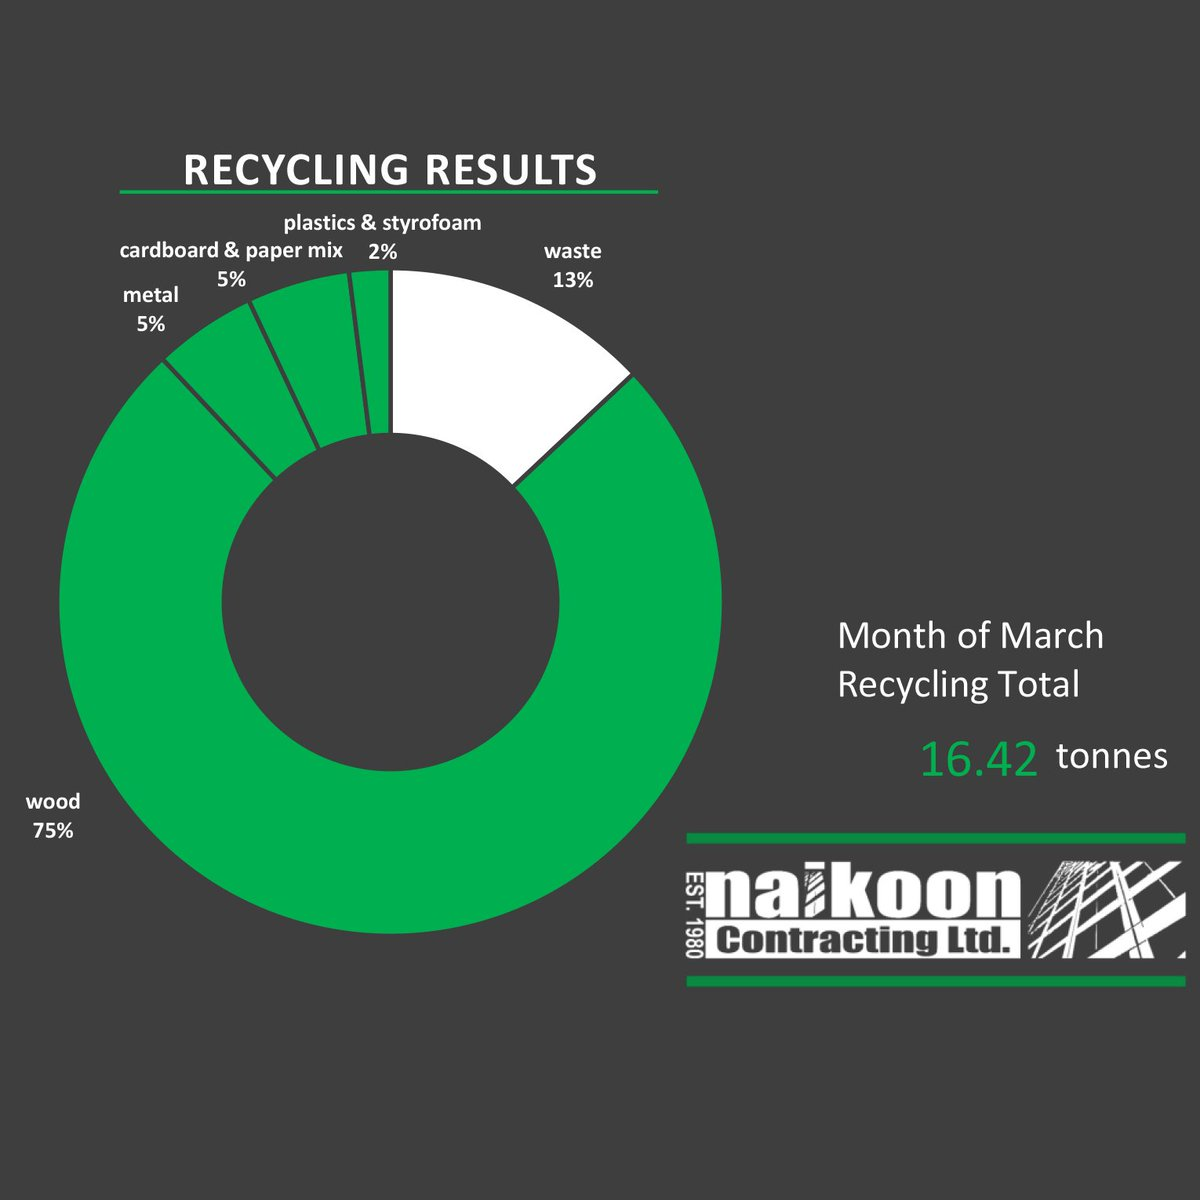 March was a great month for recycling! 87% and 16.42 tonnes in total! Very proud of our team! #stokedtorecycle #greenbuilt  . . . #thinkgreen #recycling #contractorsofinsta #customhomes #greencompany <br>http://pic.twitter.com/G7ujo2wy5g